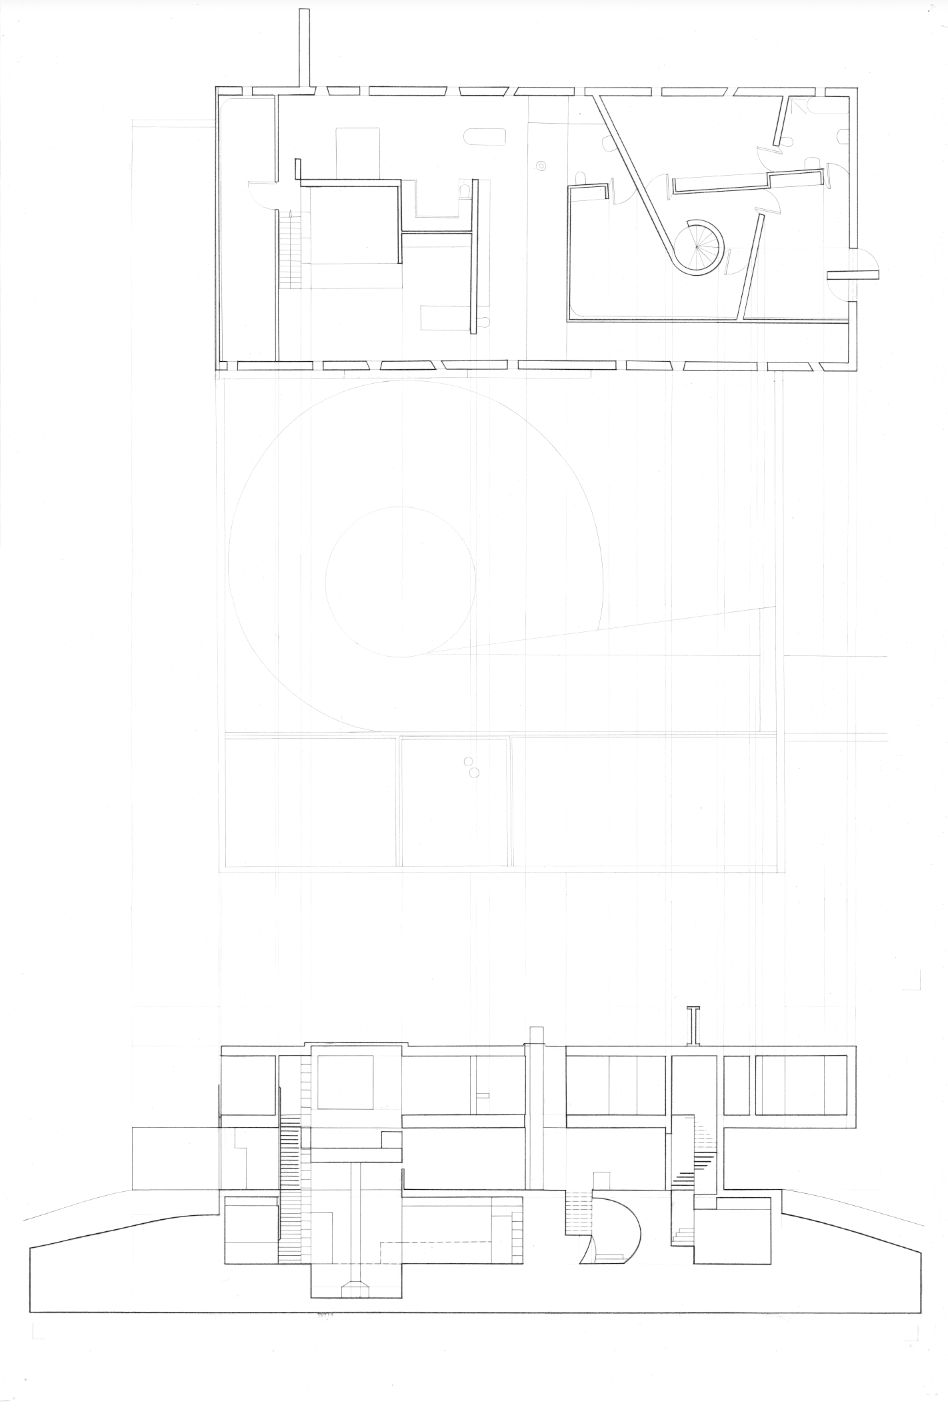 Third Floor Plan; Longitudinal Section